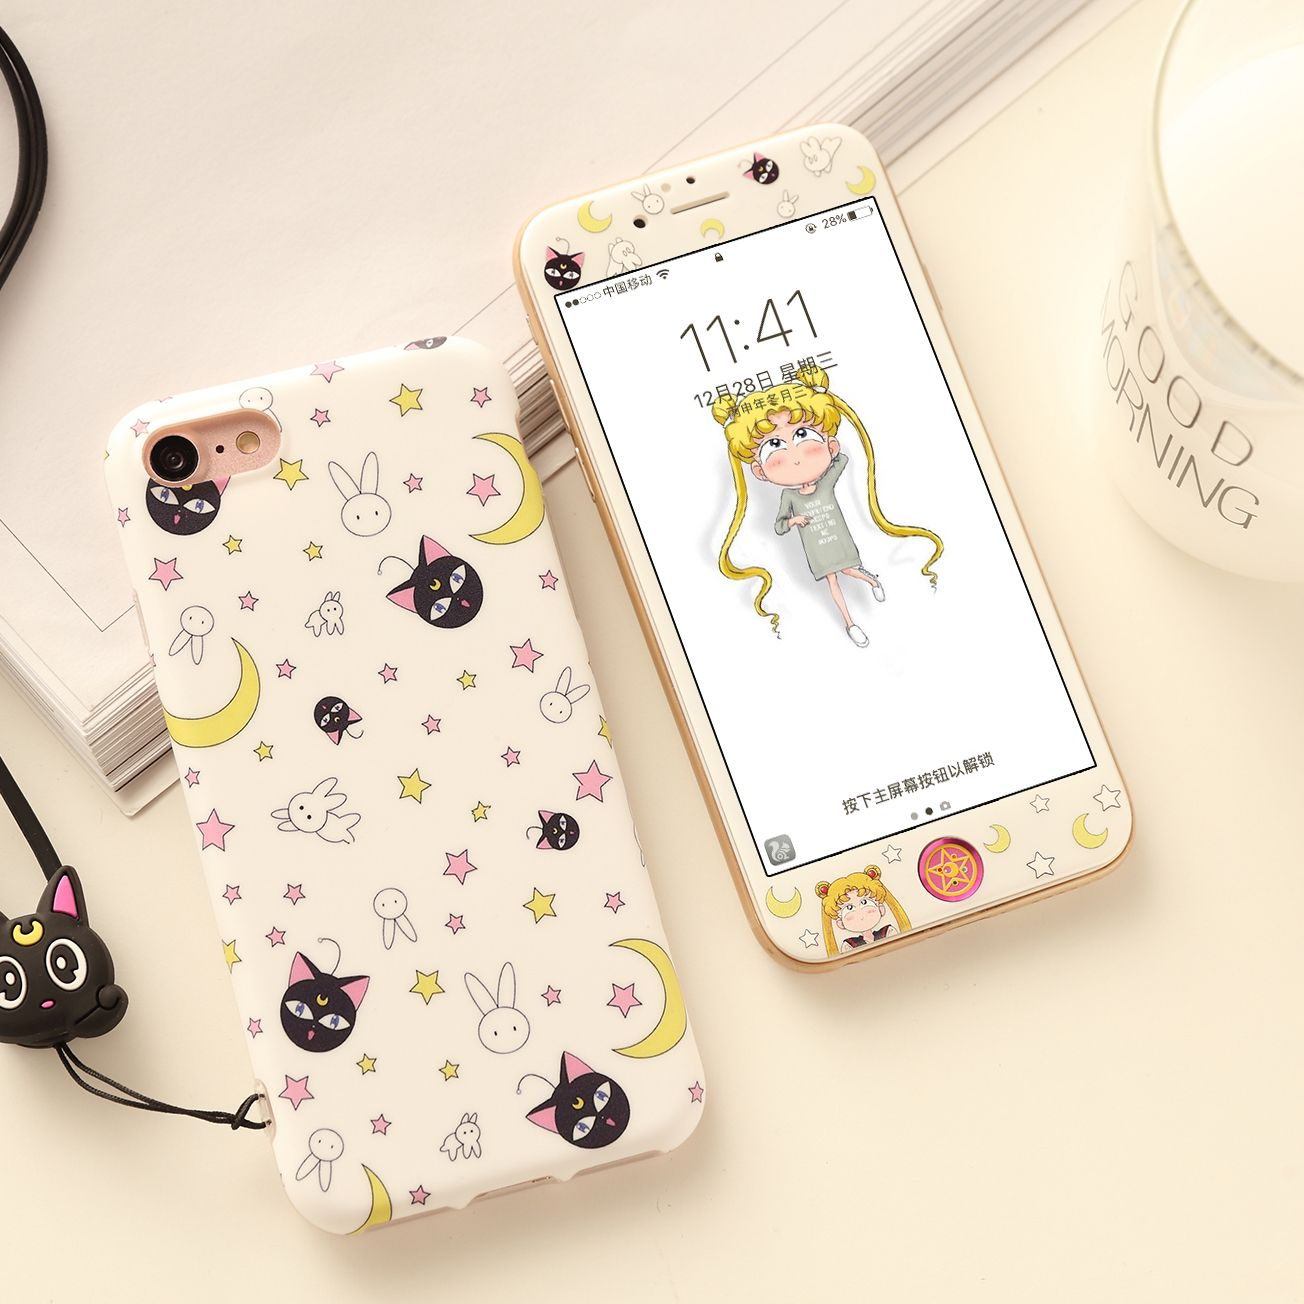 Cute Sailor Moon Phone Case For Iphone 6 6s 6plus 7 7plus 8 8p Pennycrafts Online Store Powered By S Fundas Para Iphone Fundas Para Telefono Iphone Estuche